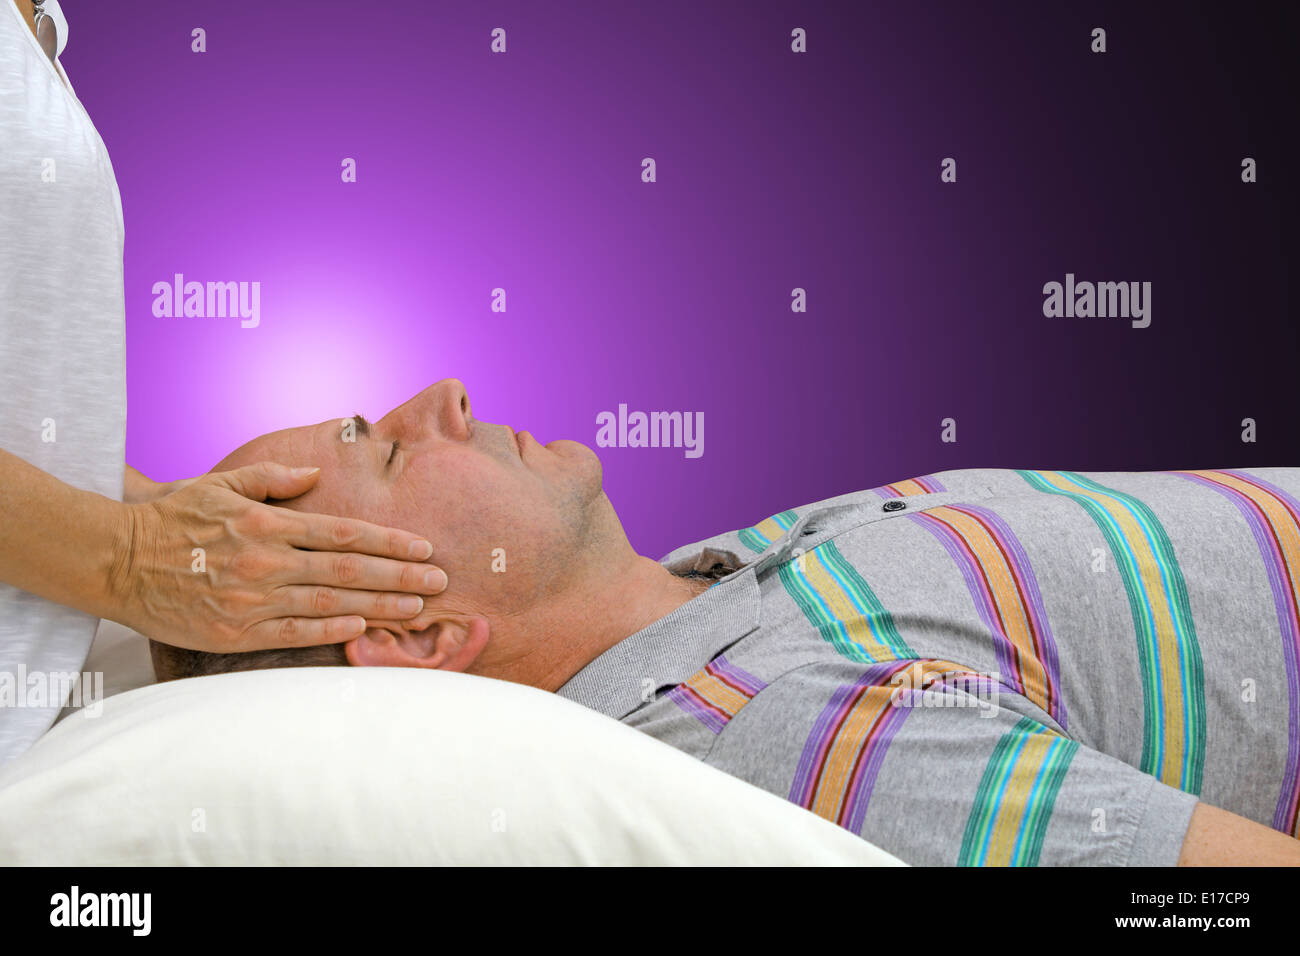 Female healer channeling healing energy to male client on a purple background - Stock Image